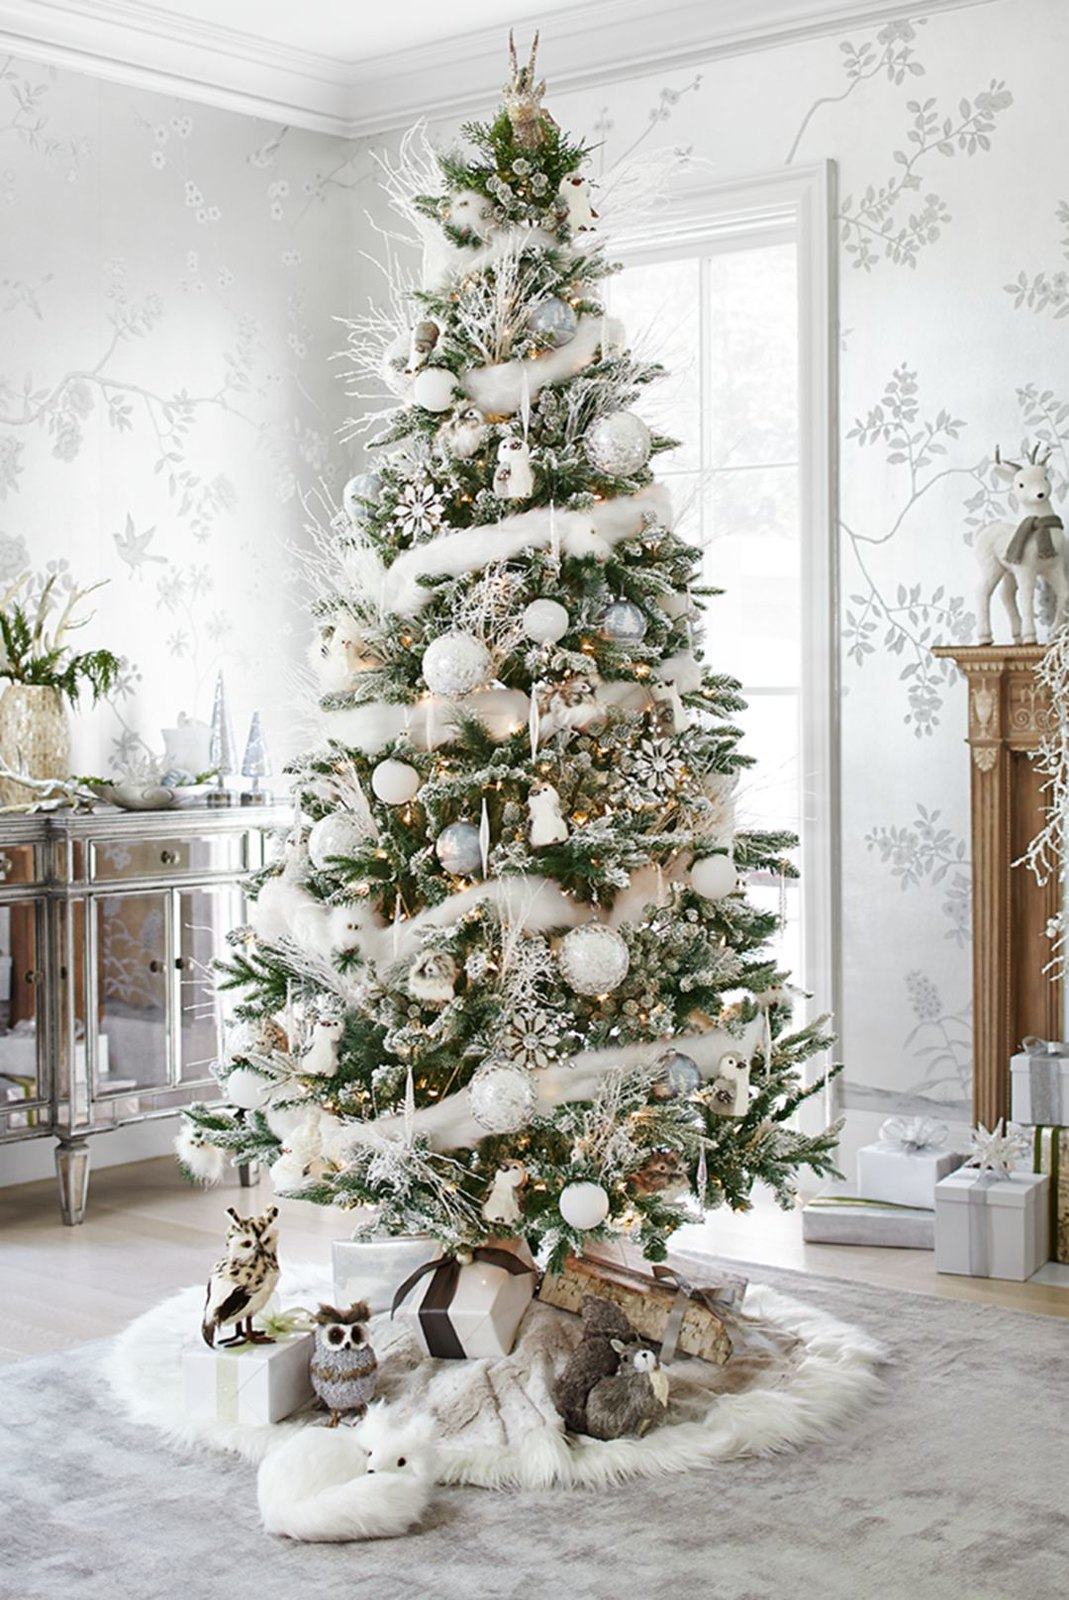 10 Ways to Decorate Your Christmas Tree - All White Christmas Tree